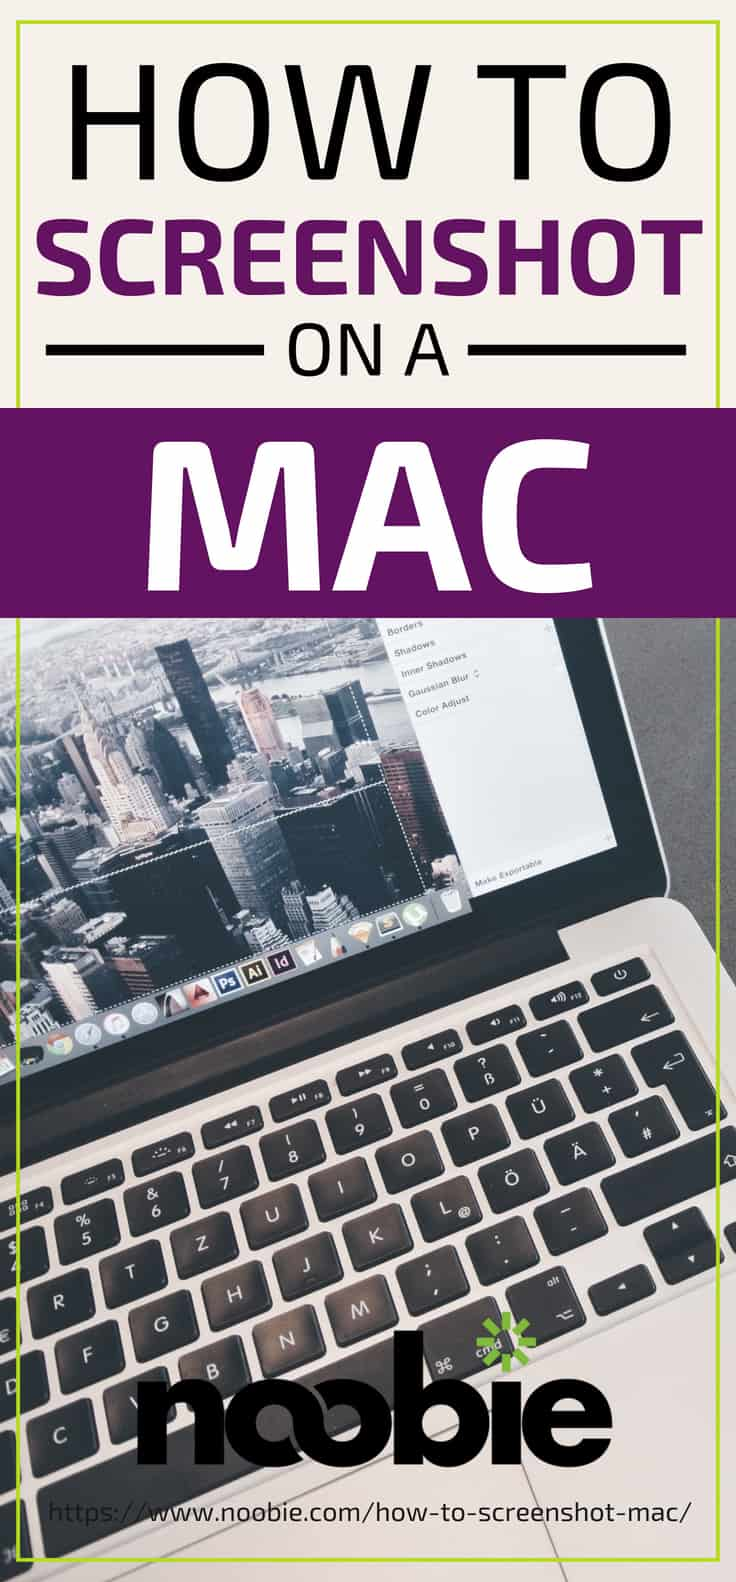 PIN | How To Screenshot On A Mac | screenshot on a Mac | where screenshots go on Mac | print screen on Mac